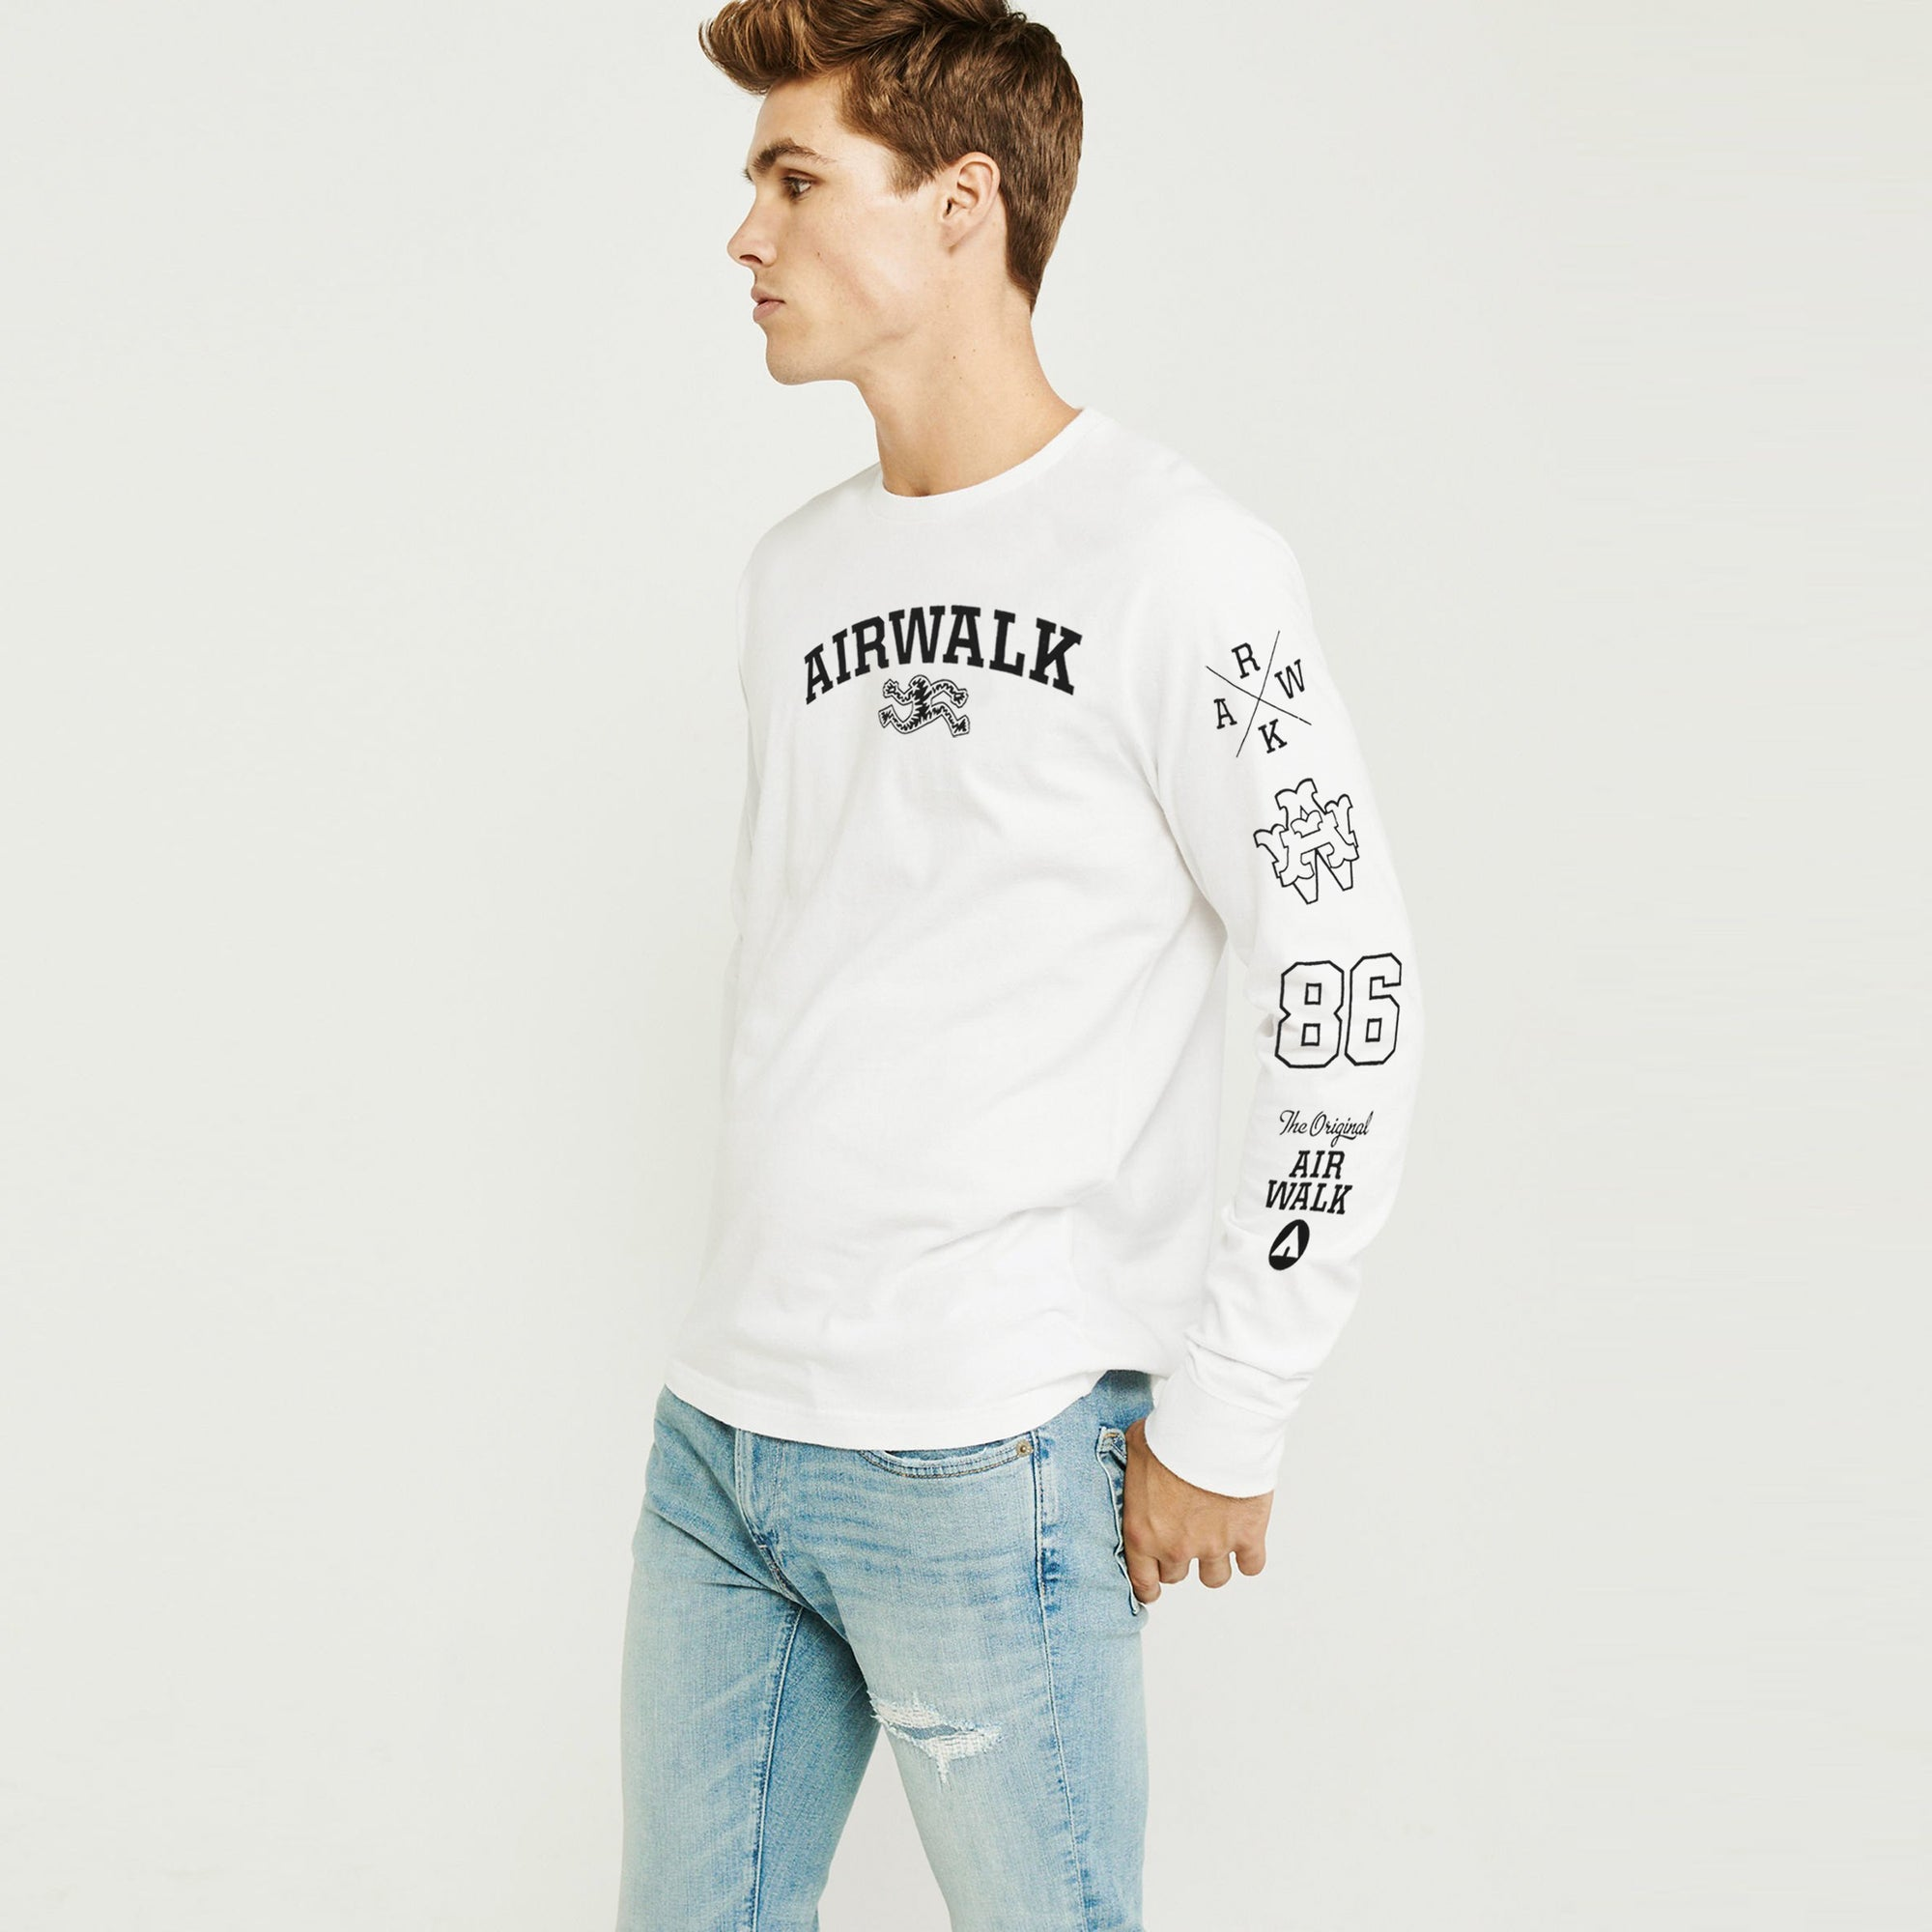 Air Walk Single Jersey Shirt For Men-Off White-BE8169